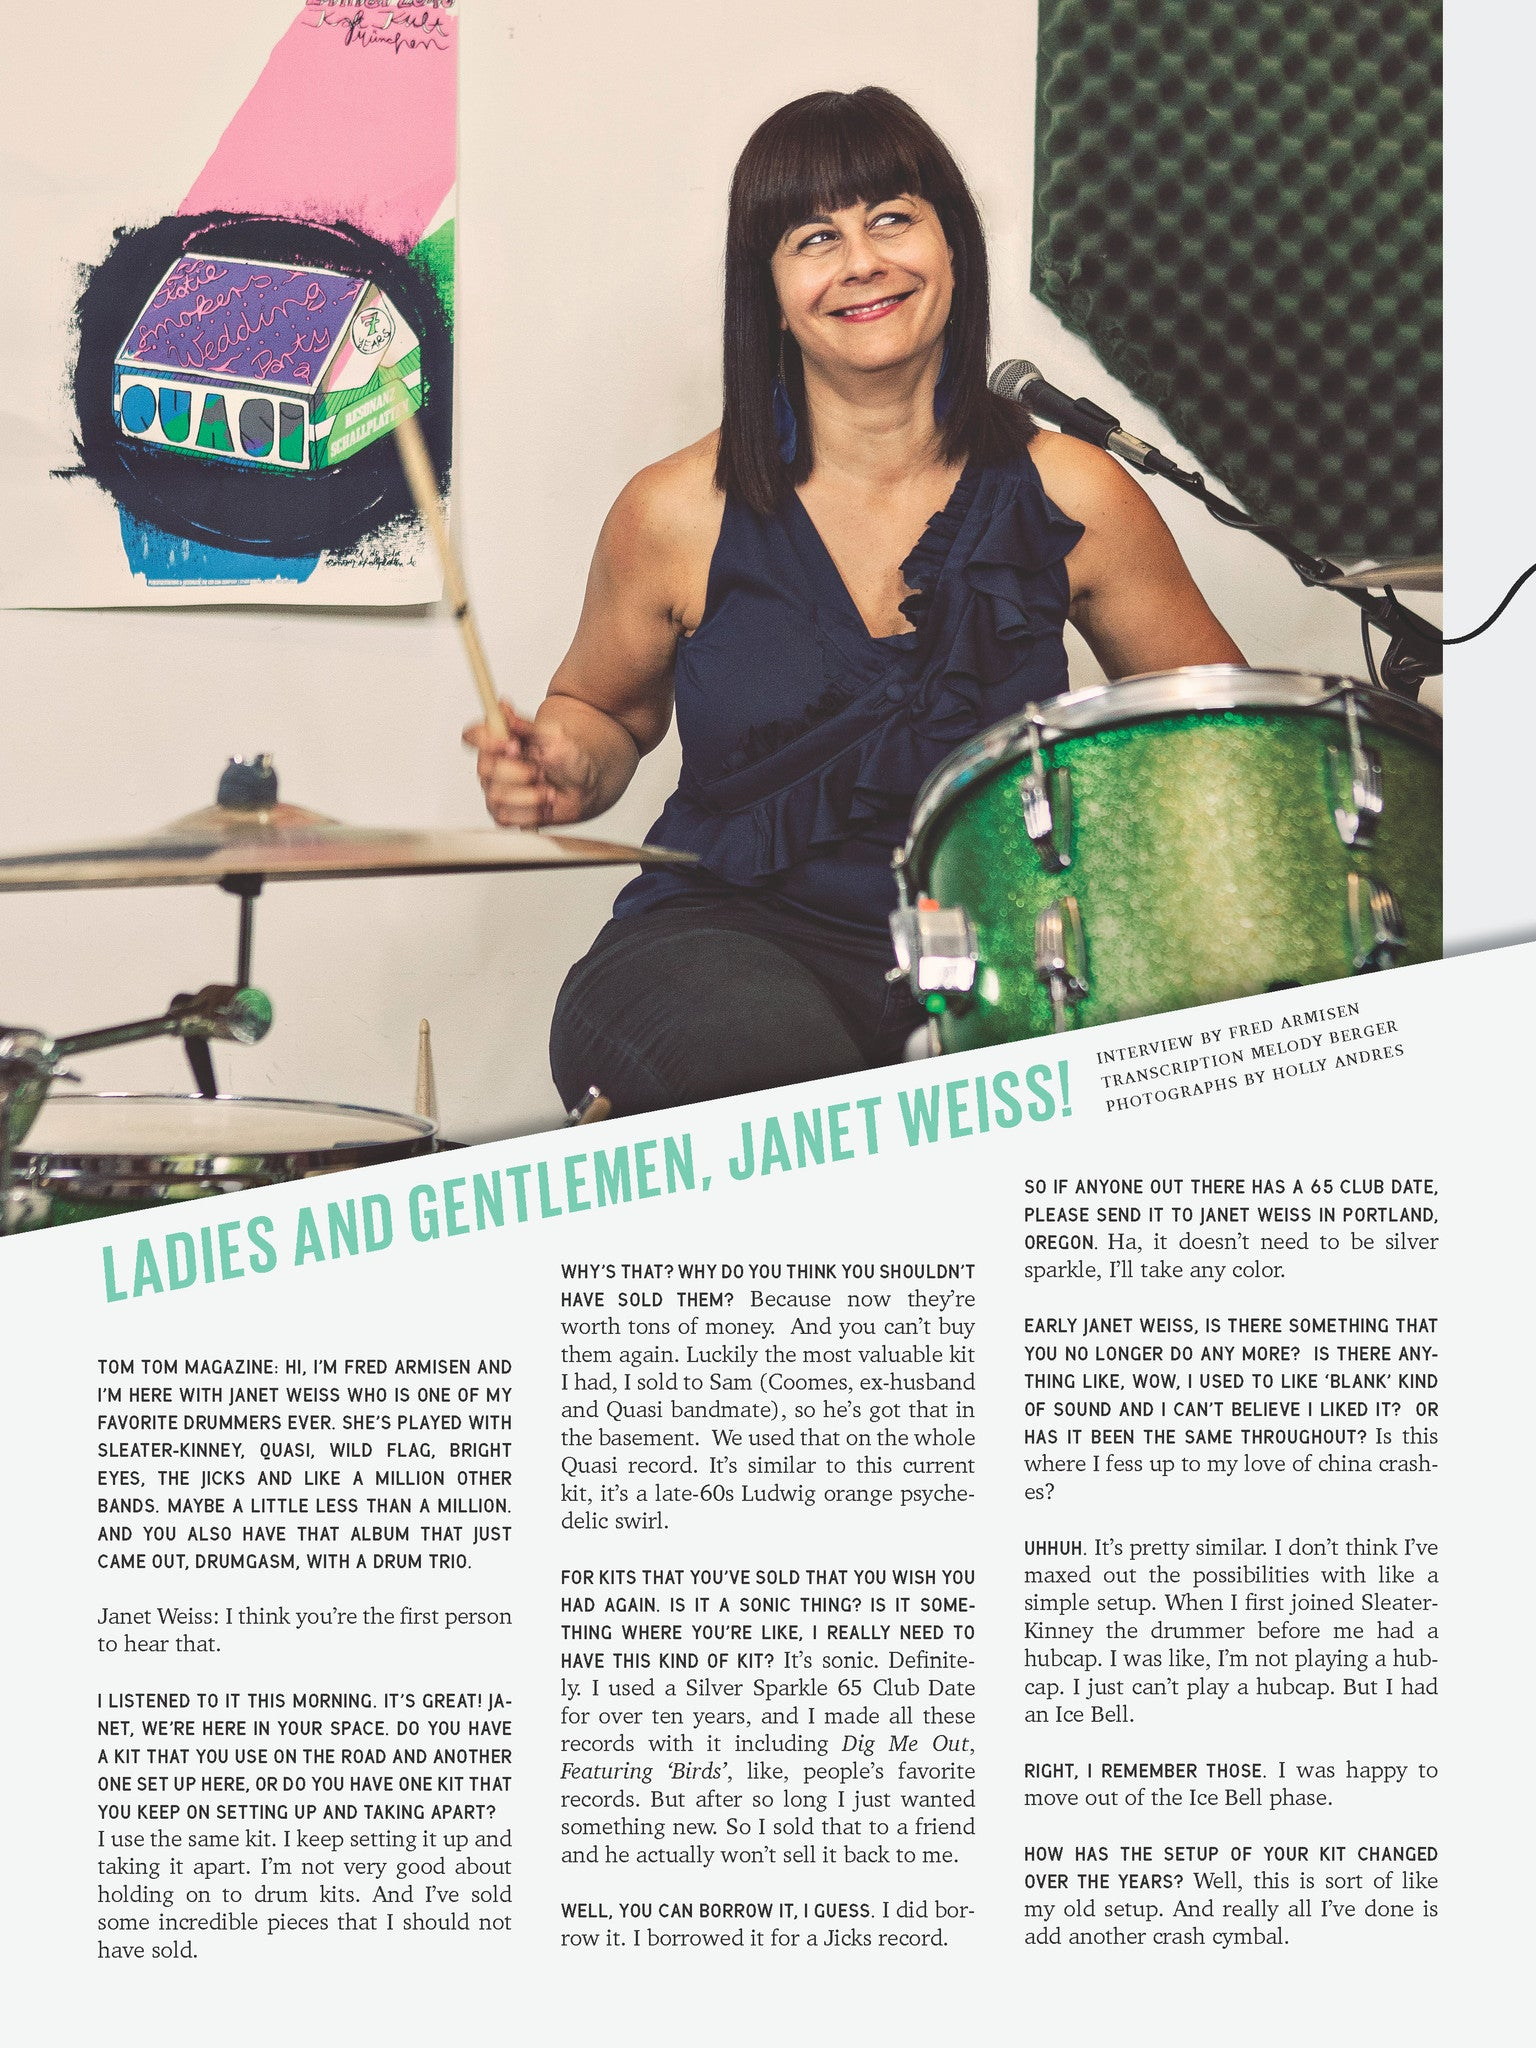 Tom Tom Magazine Issue 15: Drummers Who Sing - Drummers | Music | Feminism: Shop Tom Tom